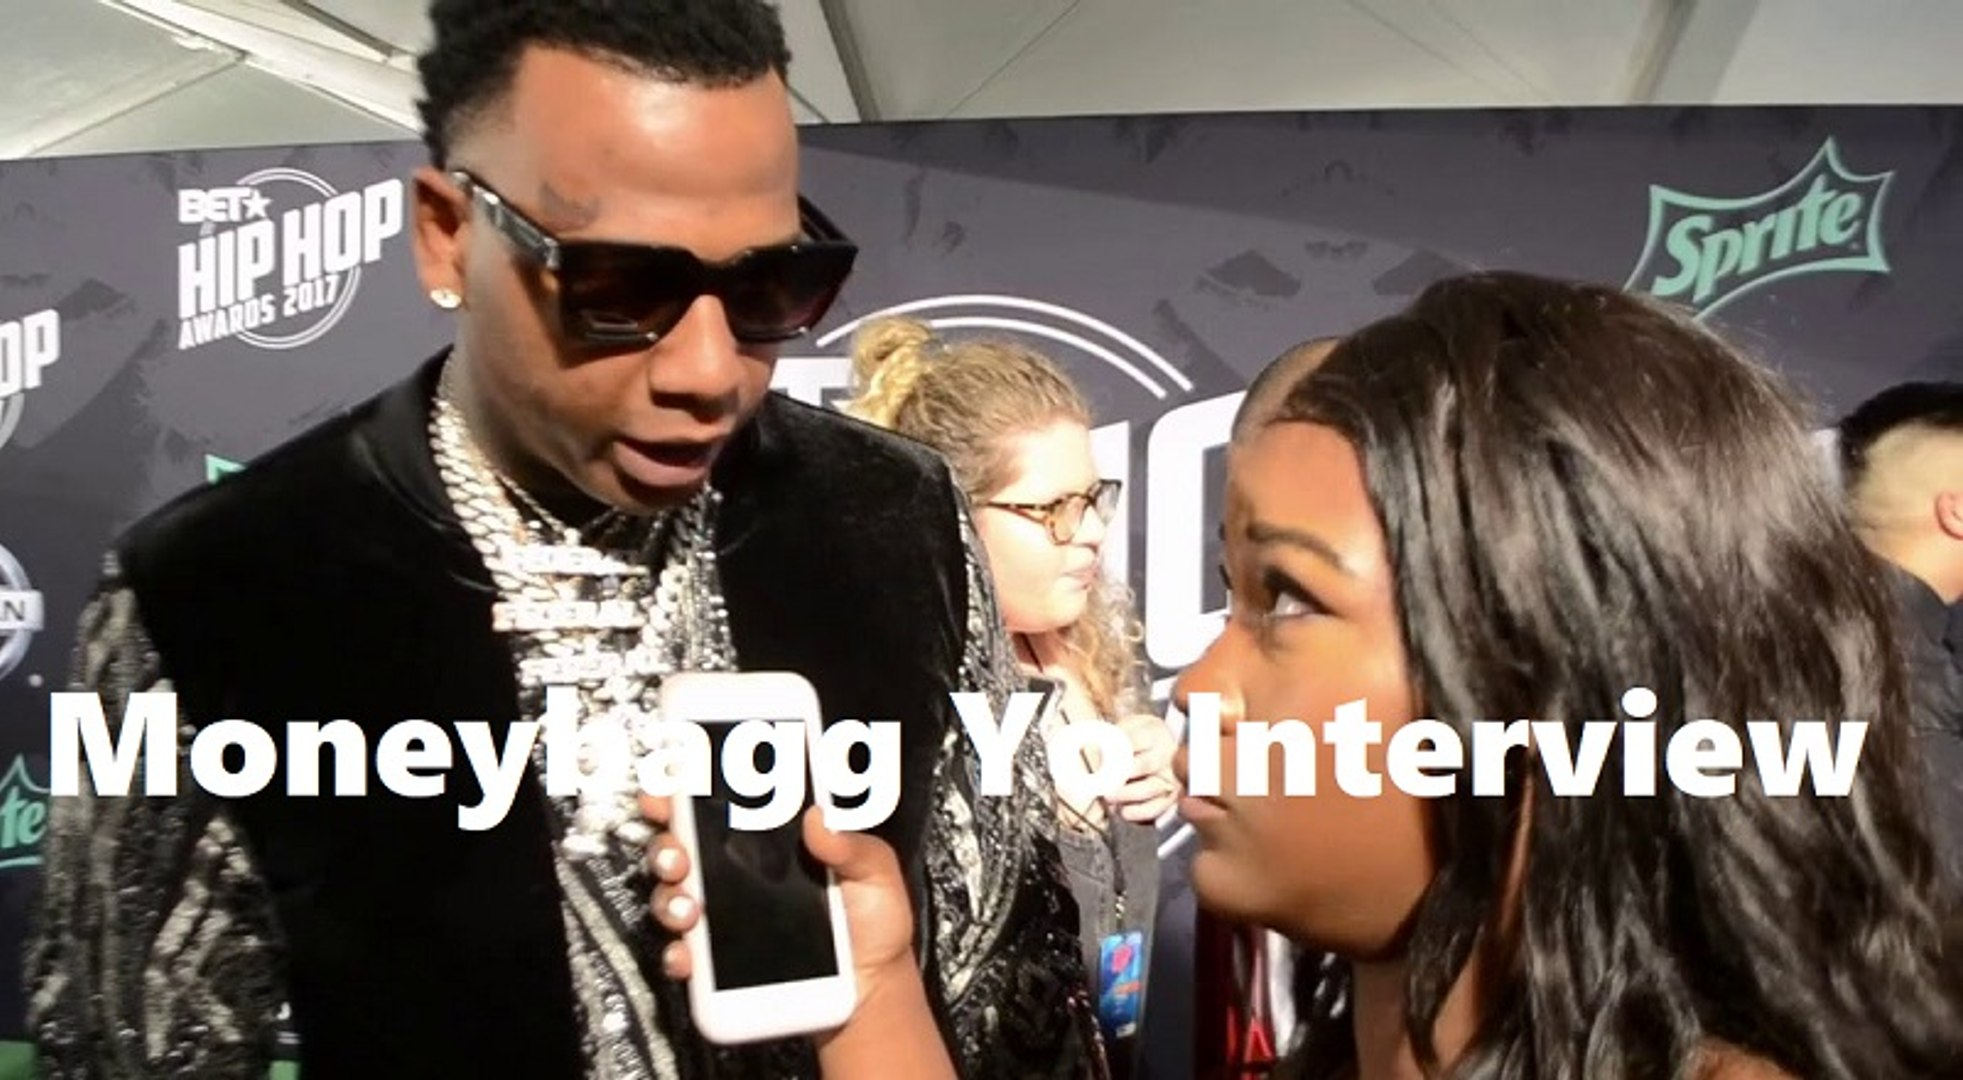 HHV Exclusive: Moneybagg Yo talks Memphis hip hop scene, being a breakout star, and more at BET Hip